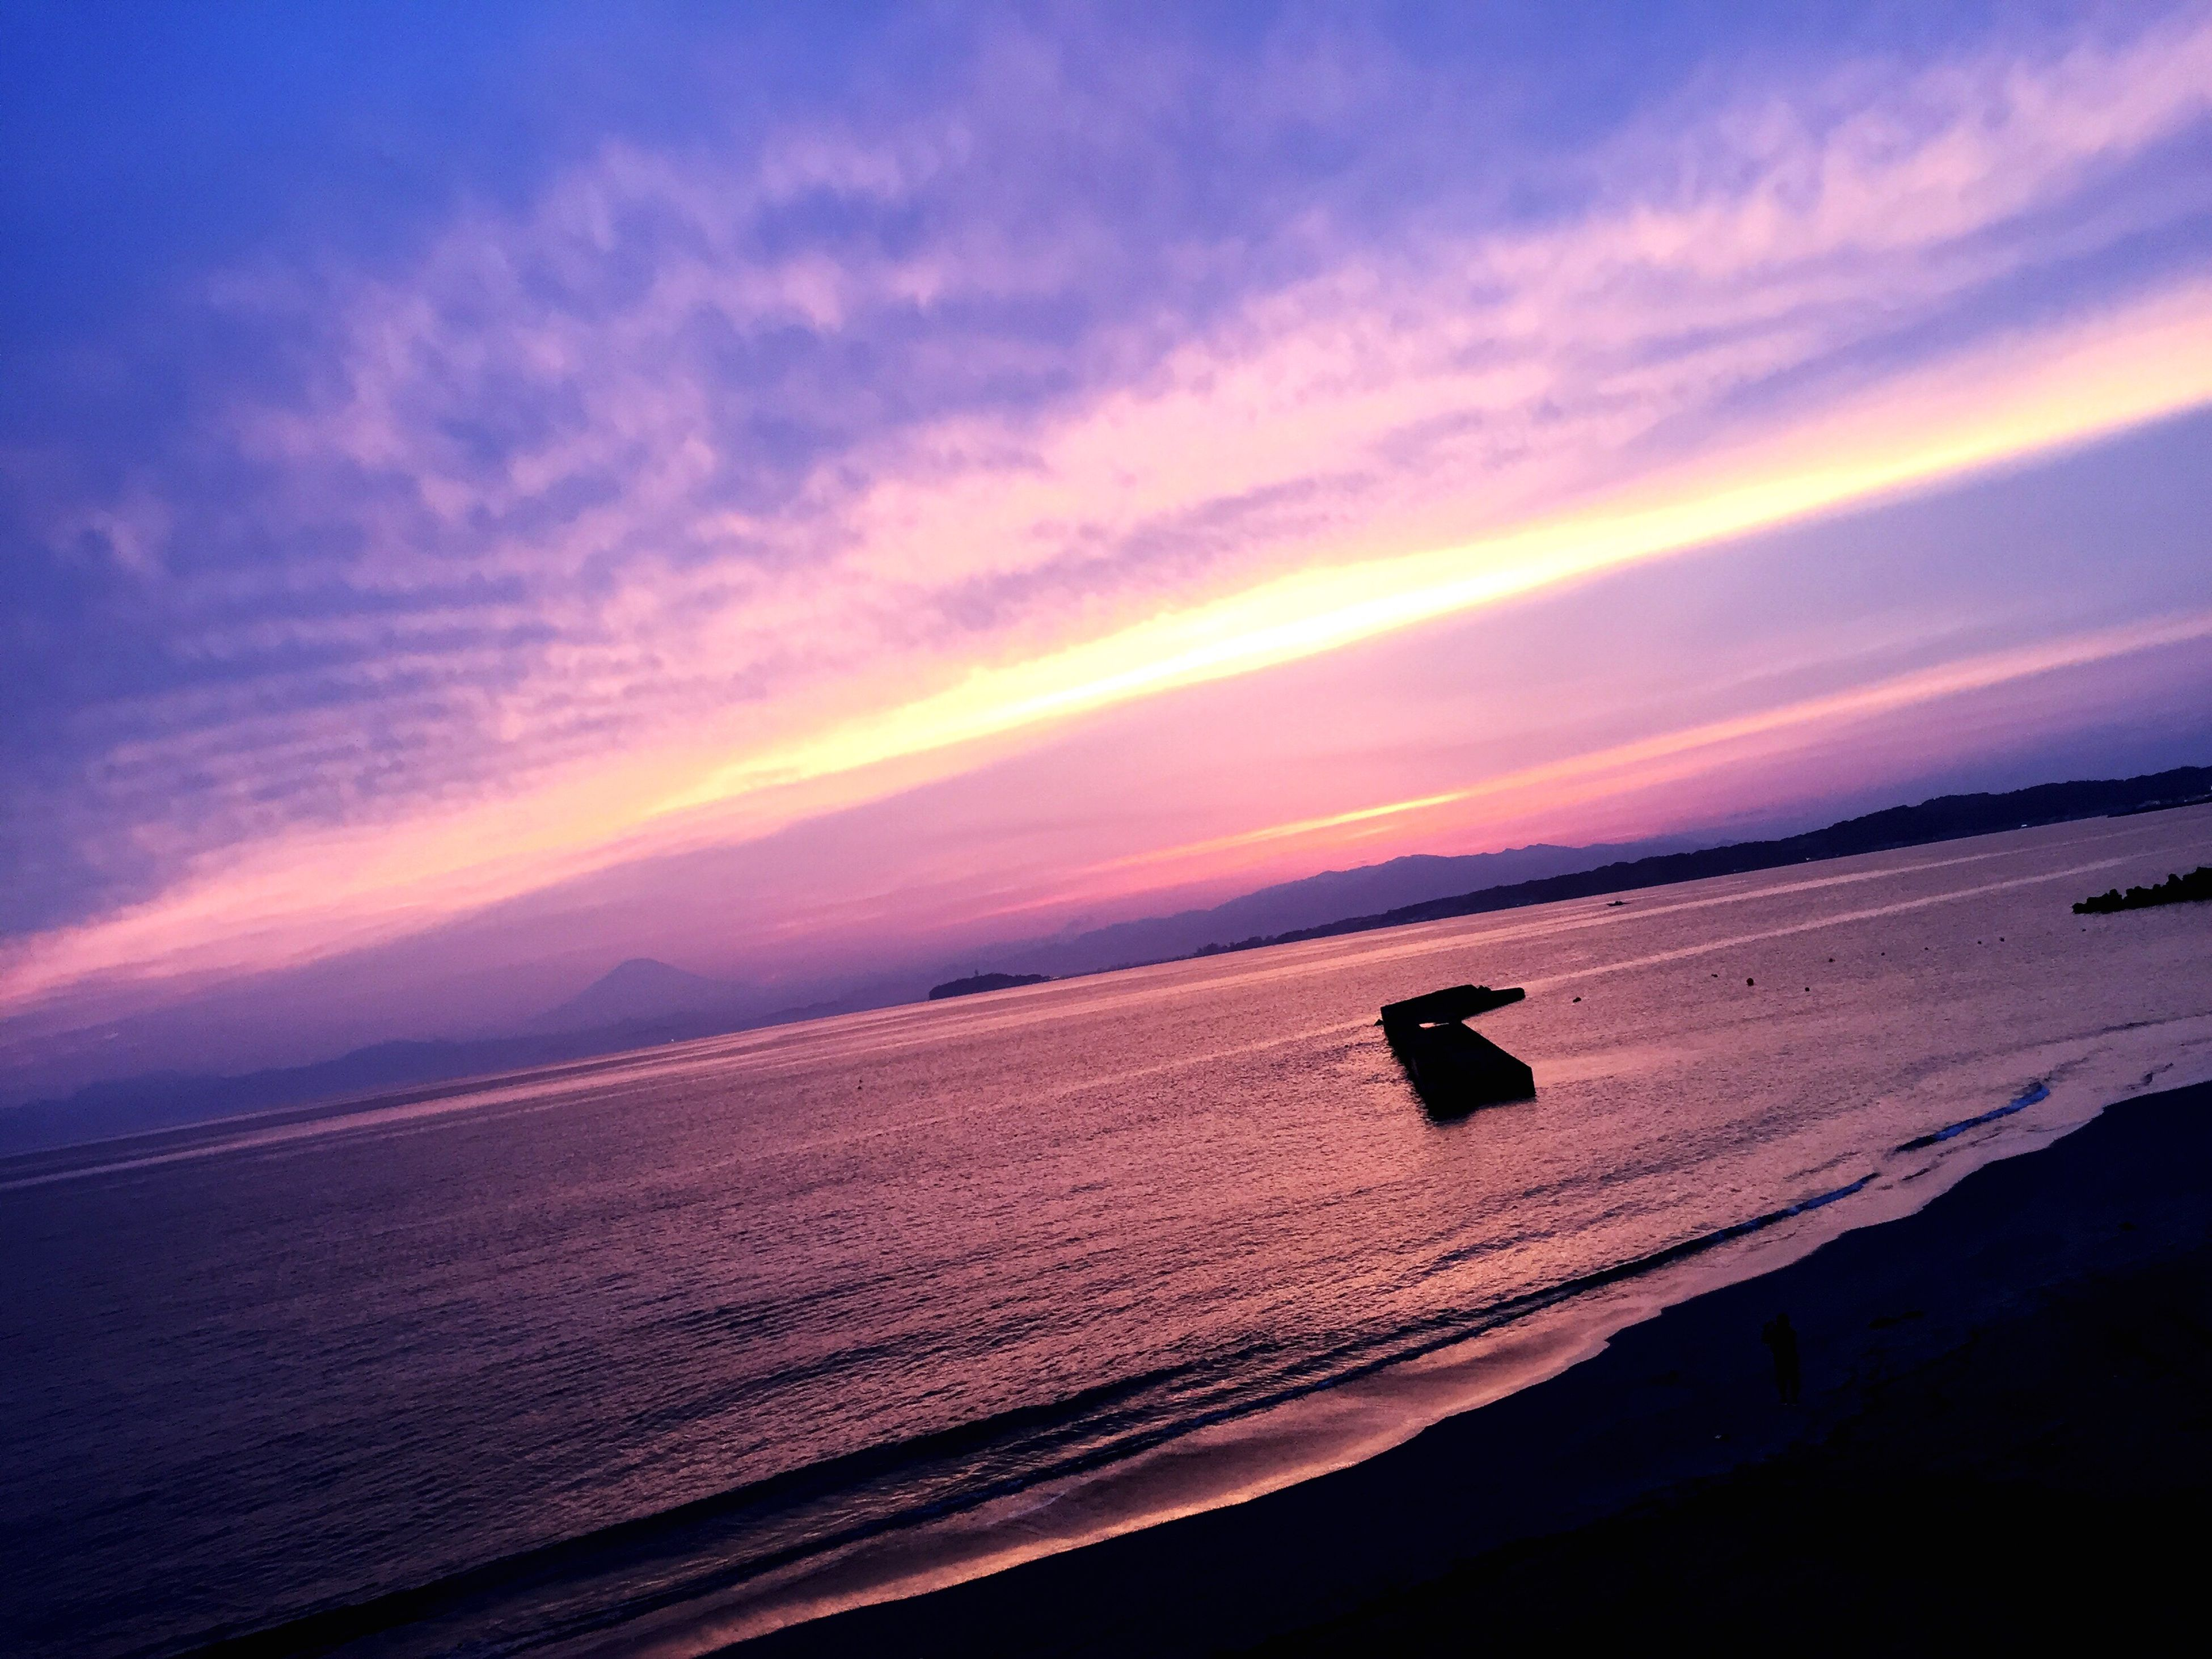 sunset, sea, beauty in nature, scenics, nature, silhouette, water, horizon over water, sky, orange color, tranquil scene, tranquility, beach, wave, cloud - sky, outdoors, no people, jet boat, nautical vessel, animal themes, mammal